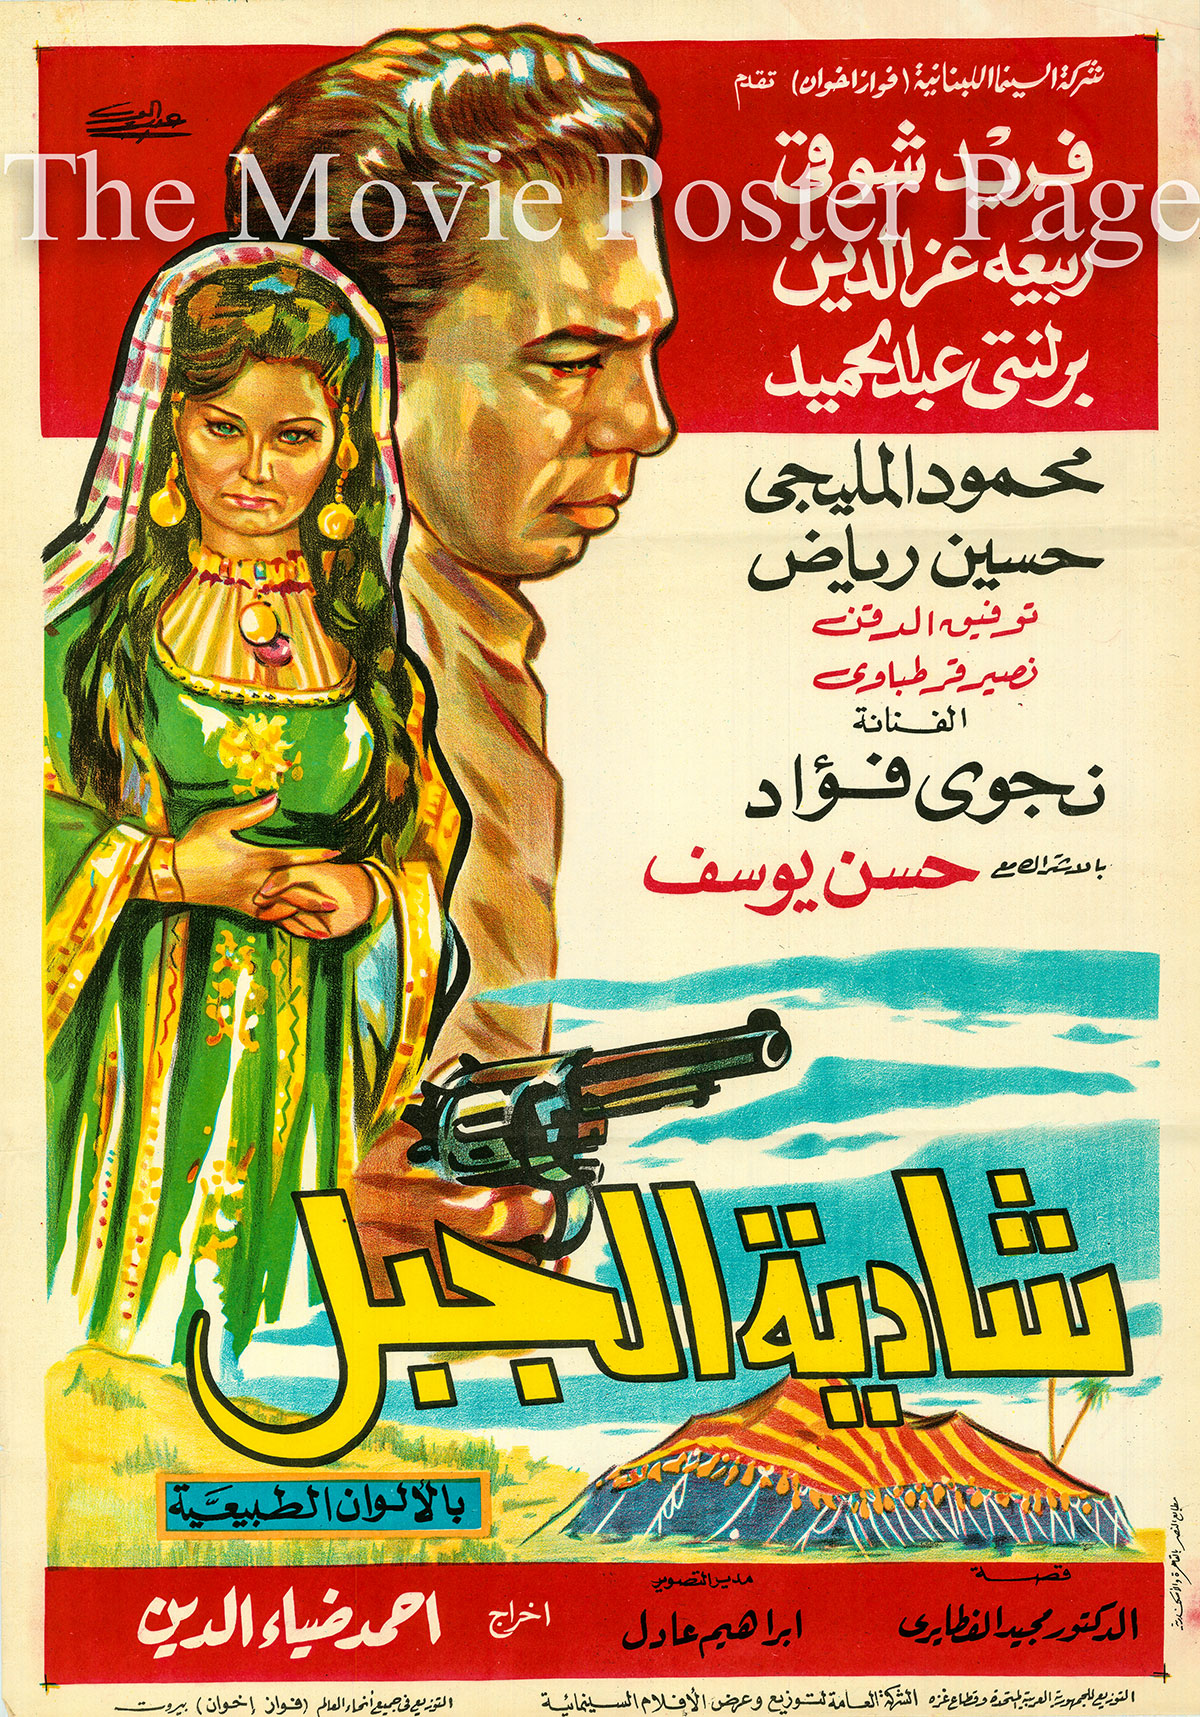 Pictured is an Egyptian promotional poster for the 1964 Ahmed Diaeddin film The Mountain Singer starring Farid Shawqi.